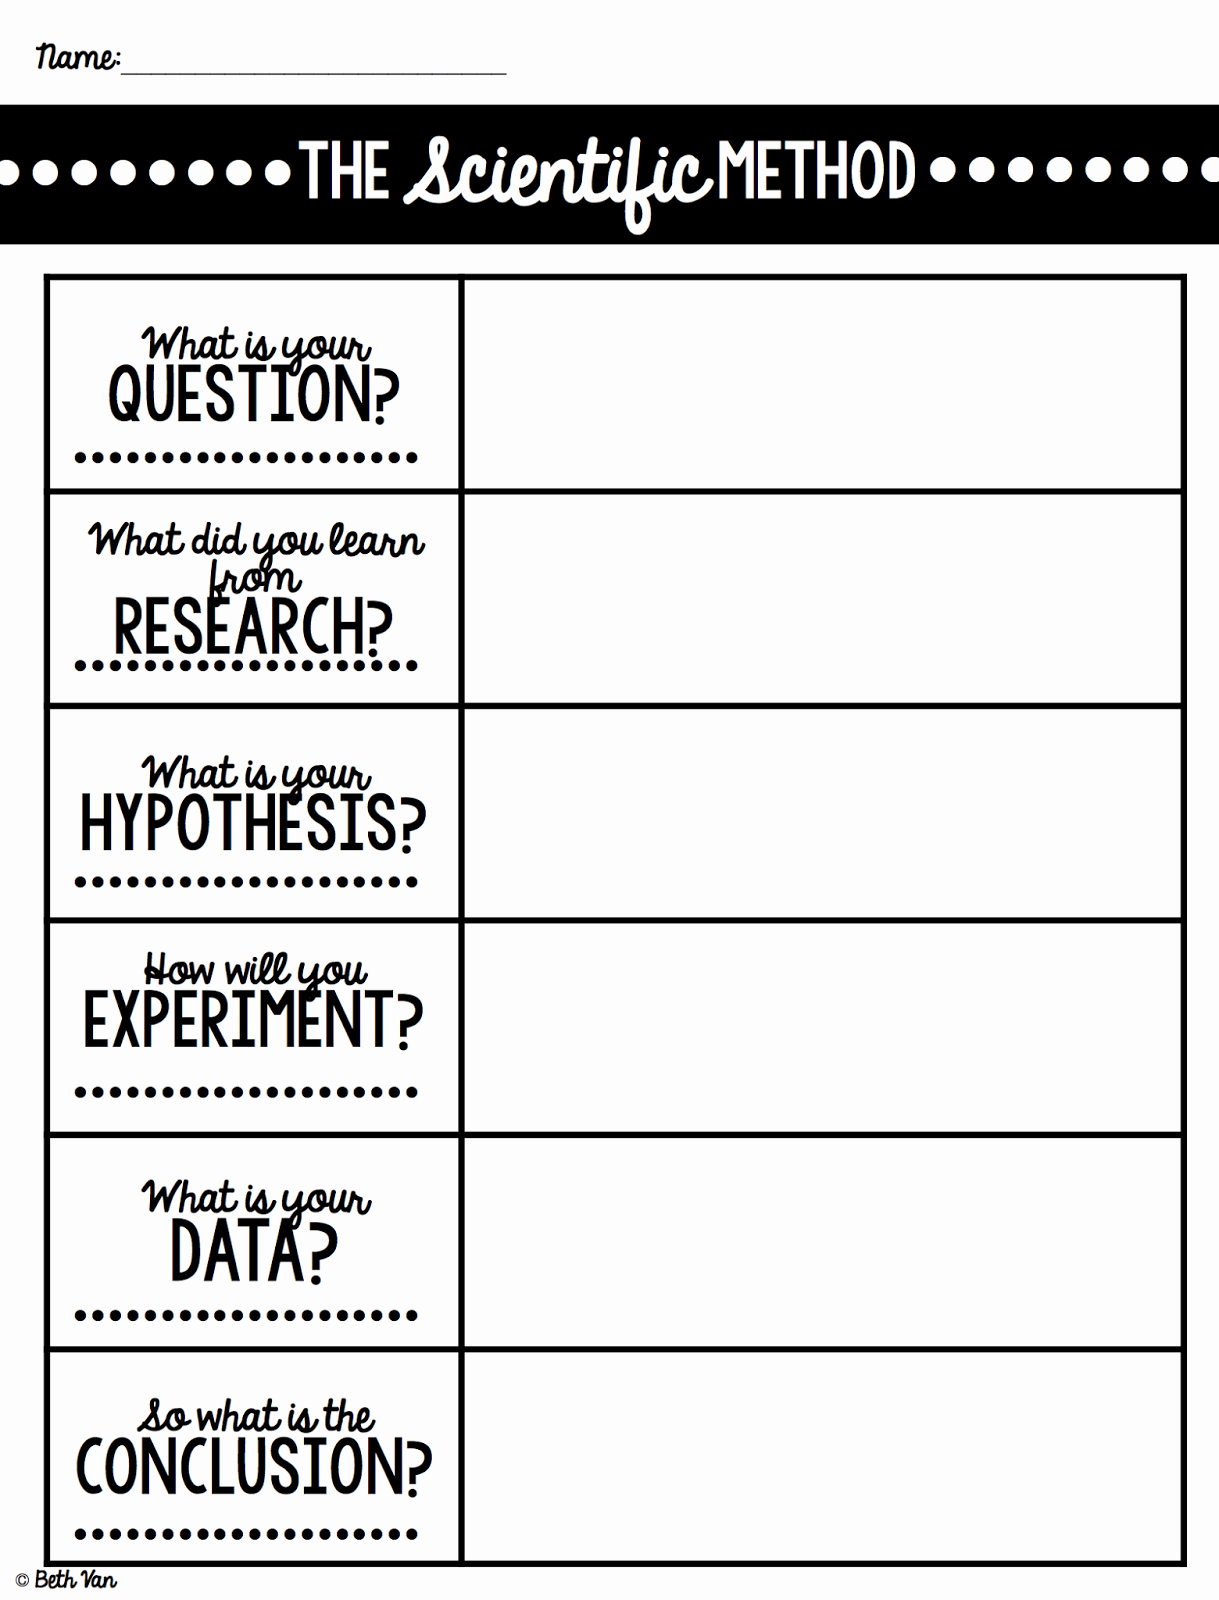 Scientific Method Steps Worksheet Beautiful theteachyteacher Can You Walk Water Scientific